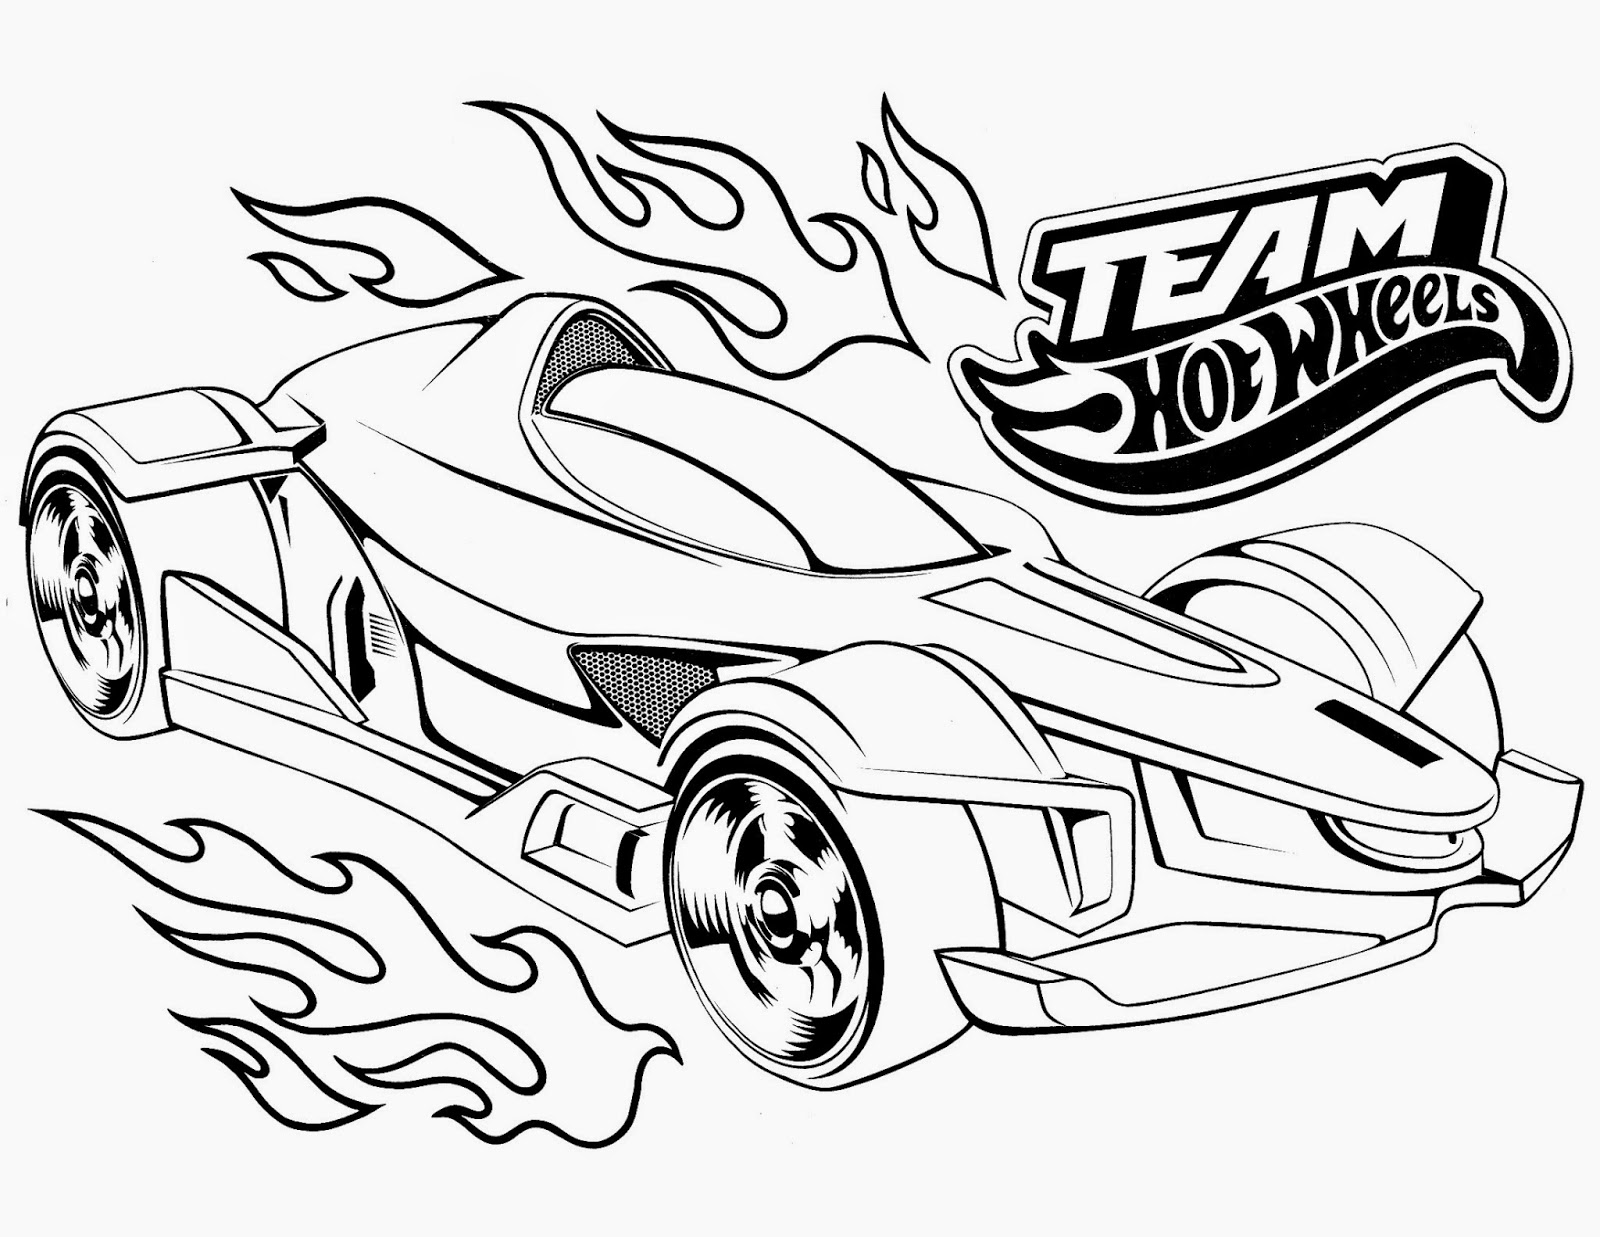 Hot Wheels Racing League Hot Wheels Coloring Pages